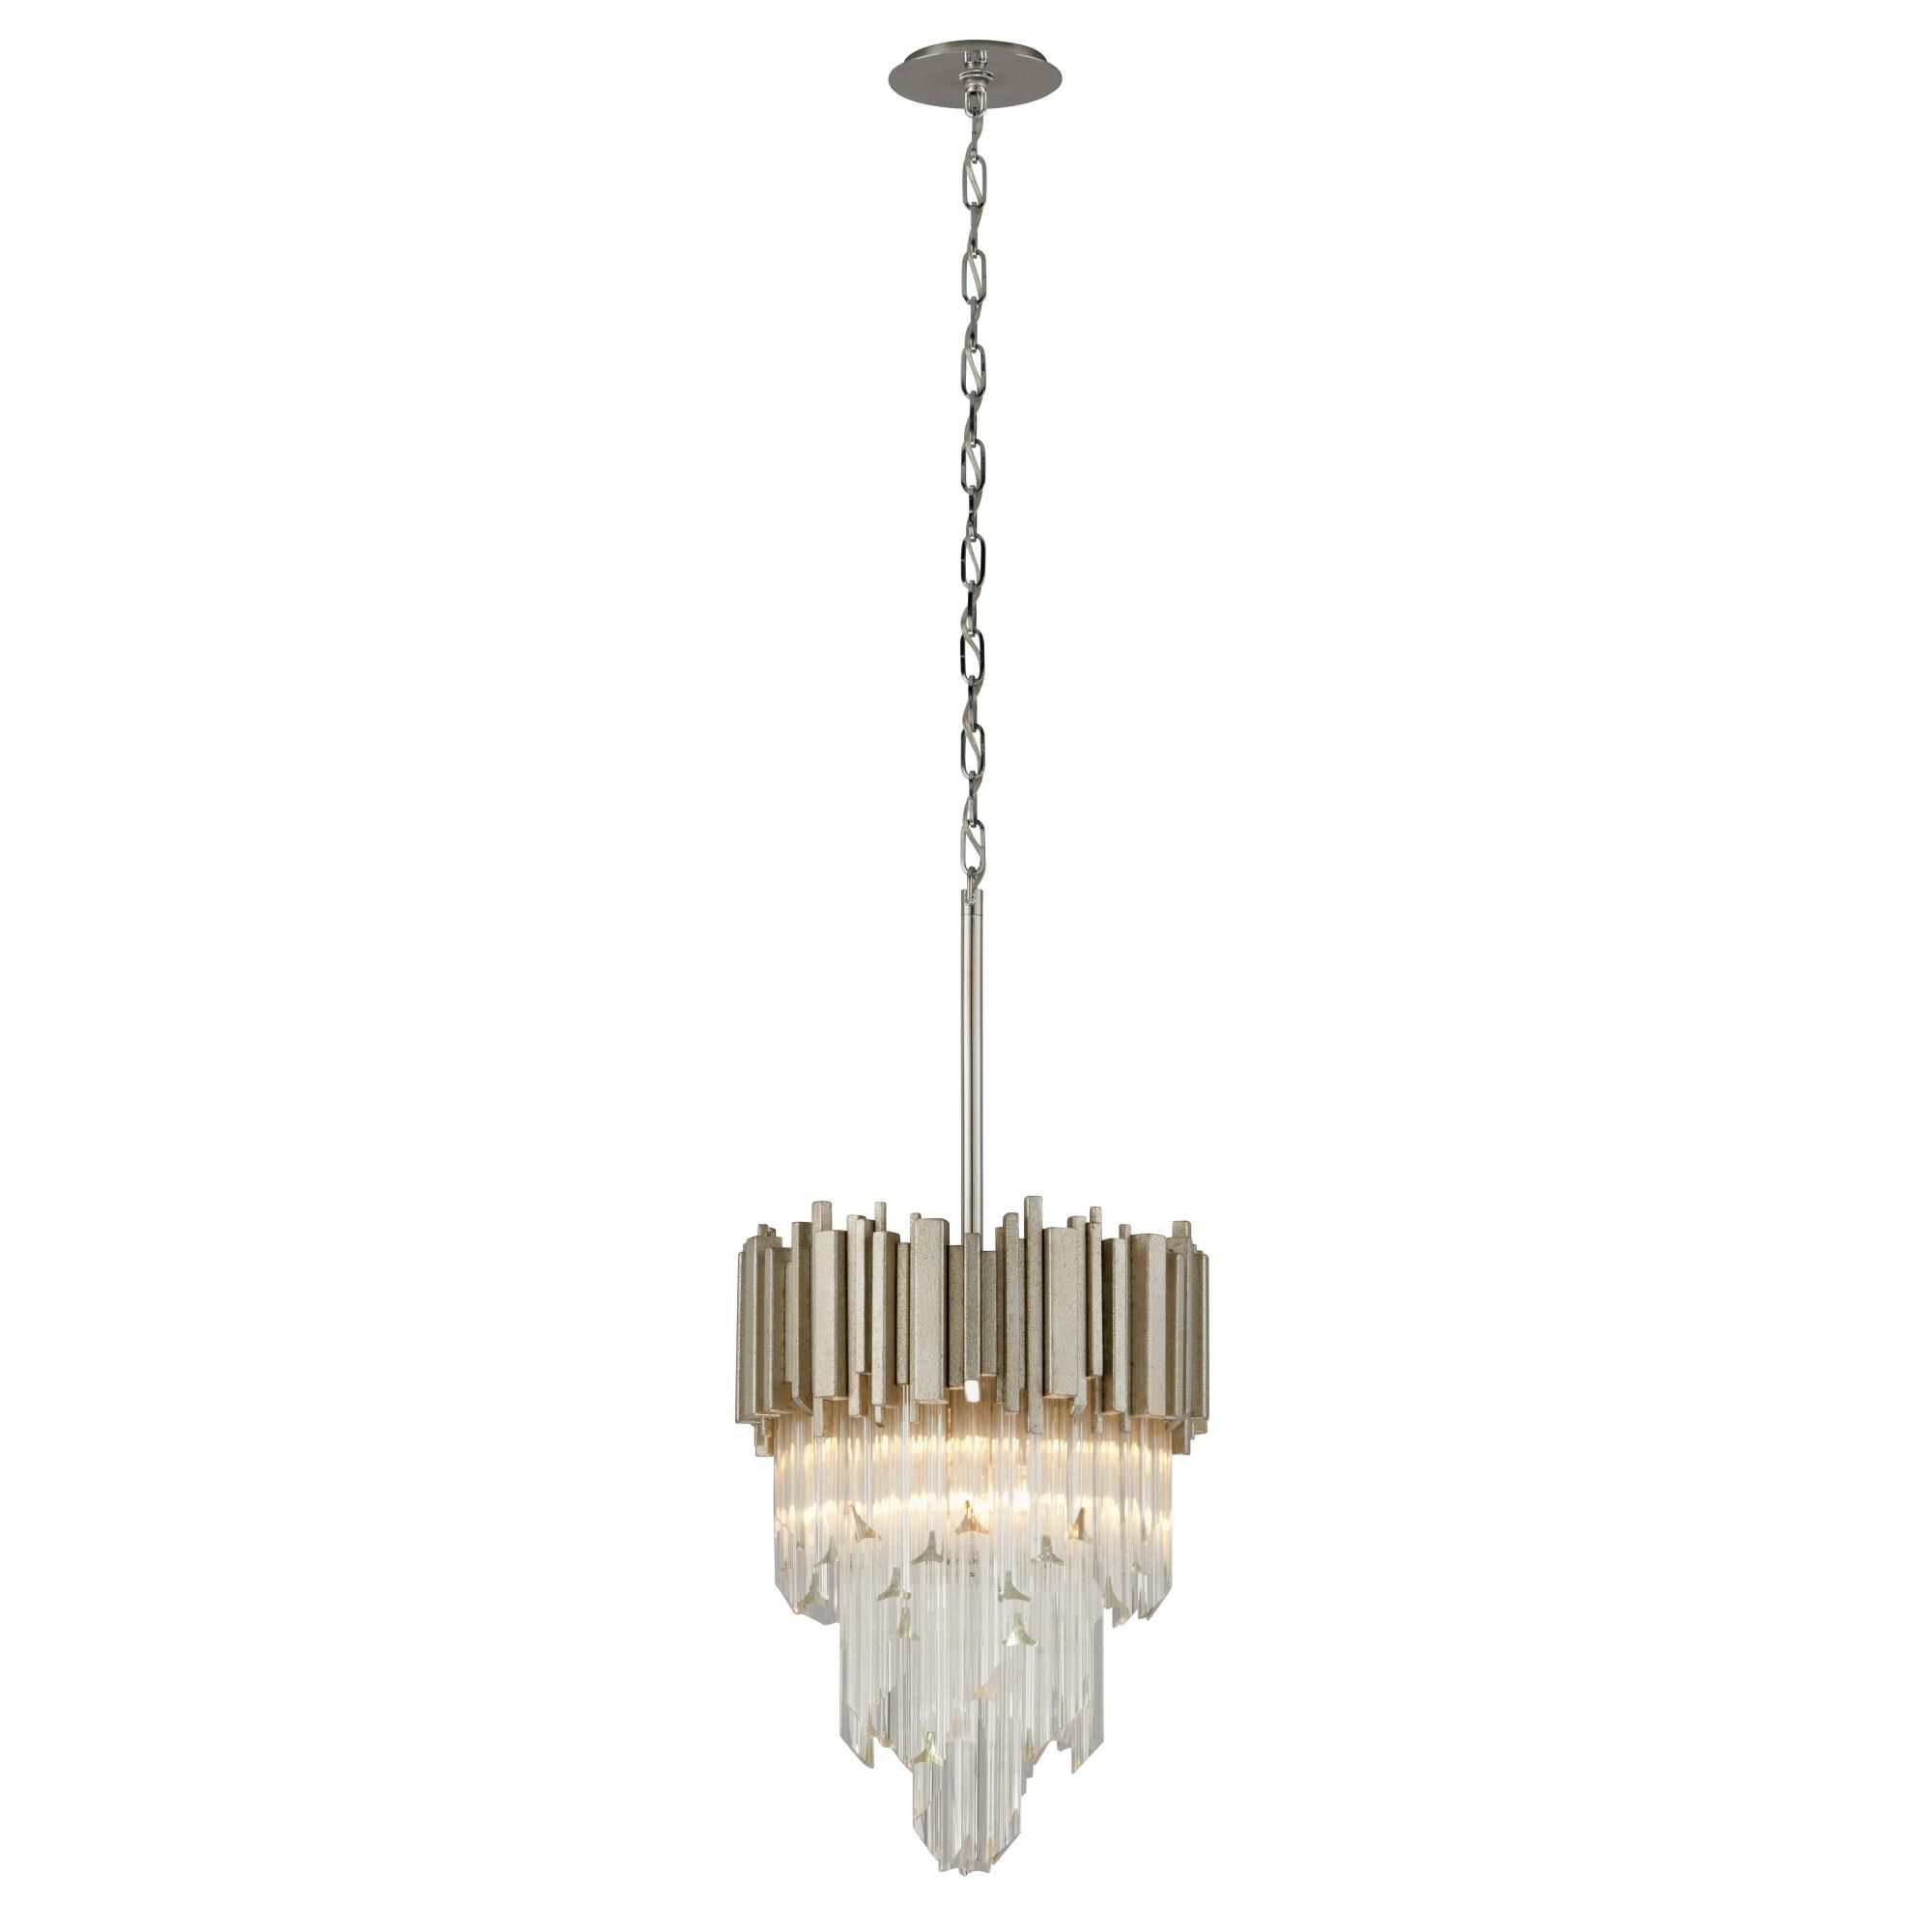 Corbett Lighting Mystique 16 Inch Large Pendant Mystique - 226-44 - Transitional Large Pendant